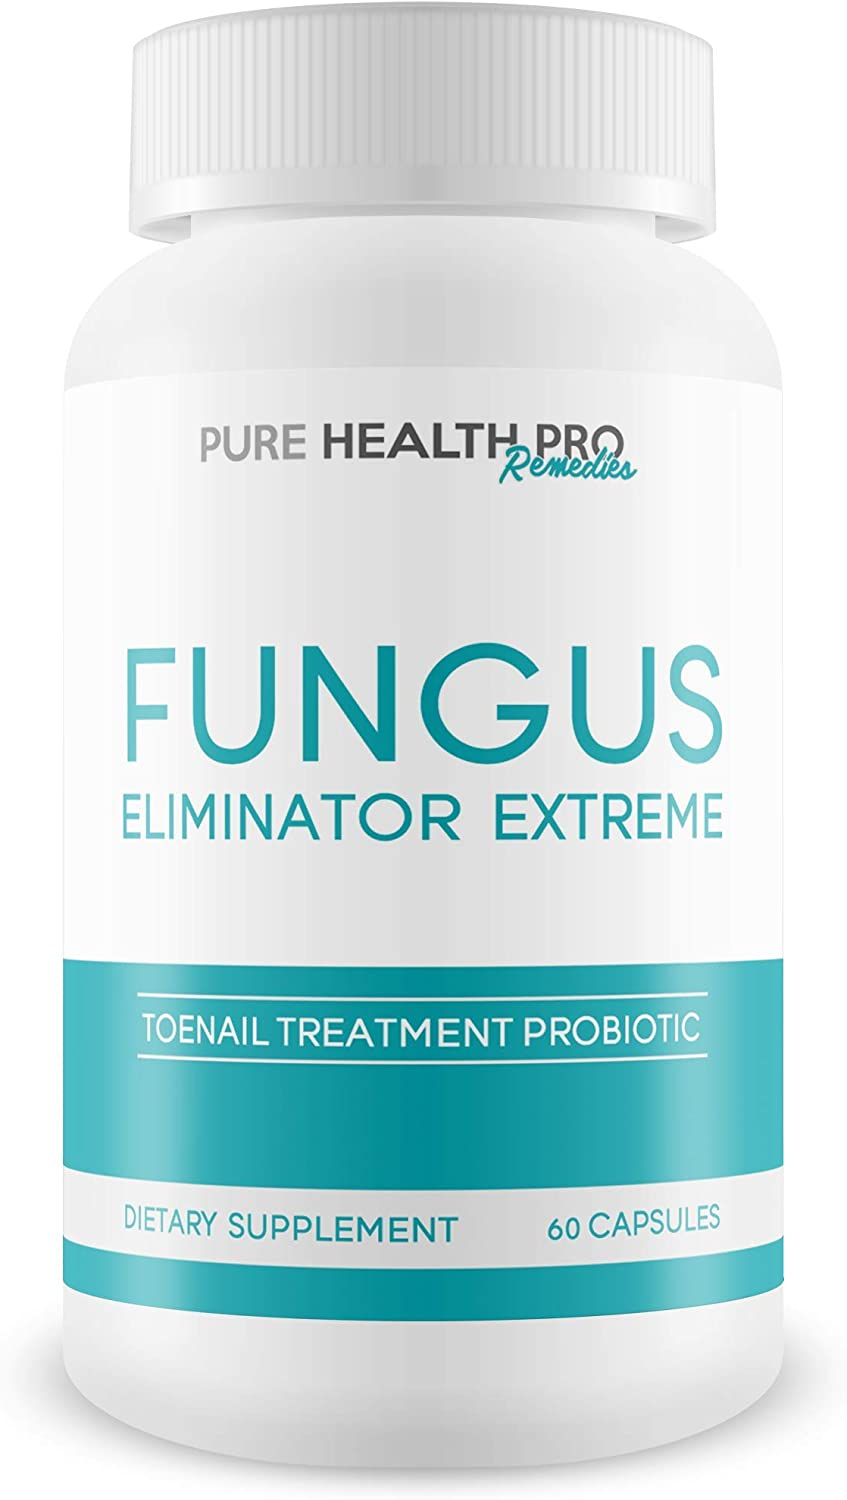 Fungus Eliminator Extreme - Toenail Treatment Probiotic - Probiotics for Overall Health - Probiotic Supplement Nail Fungus Eliminator - Fungus Eliminator Pure Health Pro Remedies: Health & Personal Care